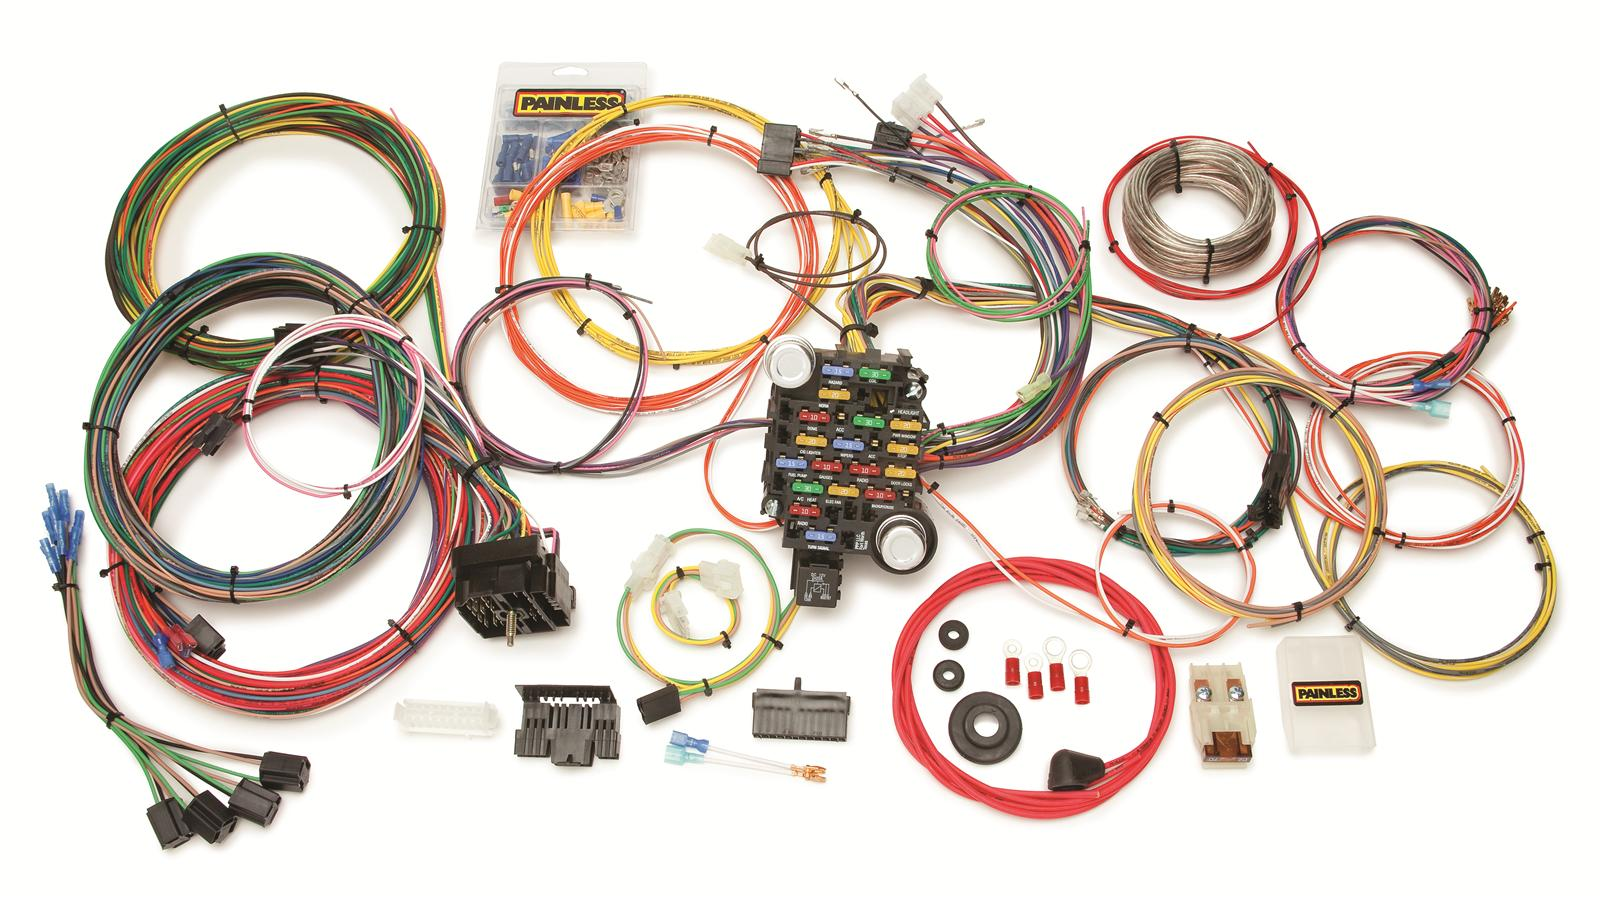 prf 10205_xl painless performance gmc chevy truck harnesses 10205 free wiring harness 1975 chevy k20 dual gas tank at reclaimingppi.co